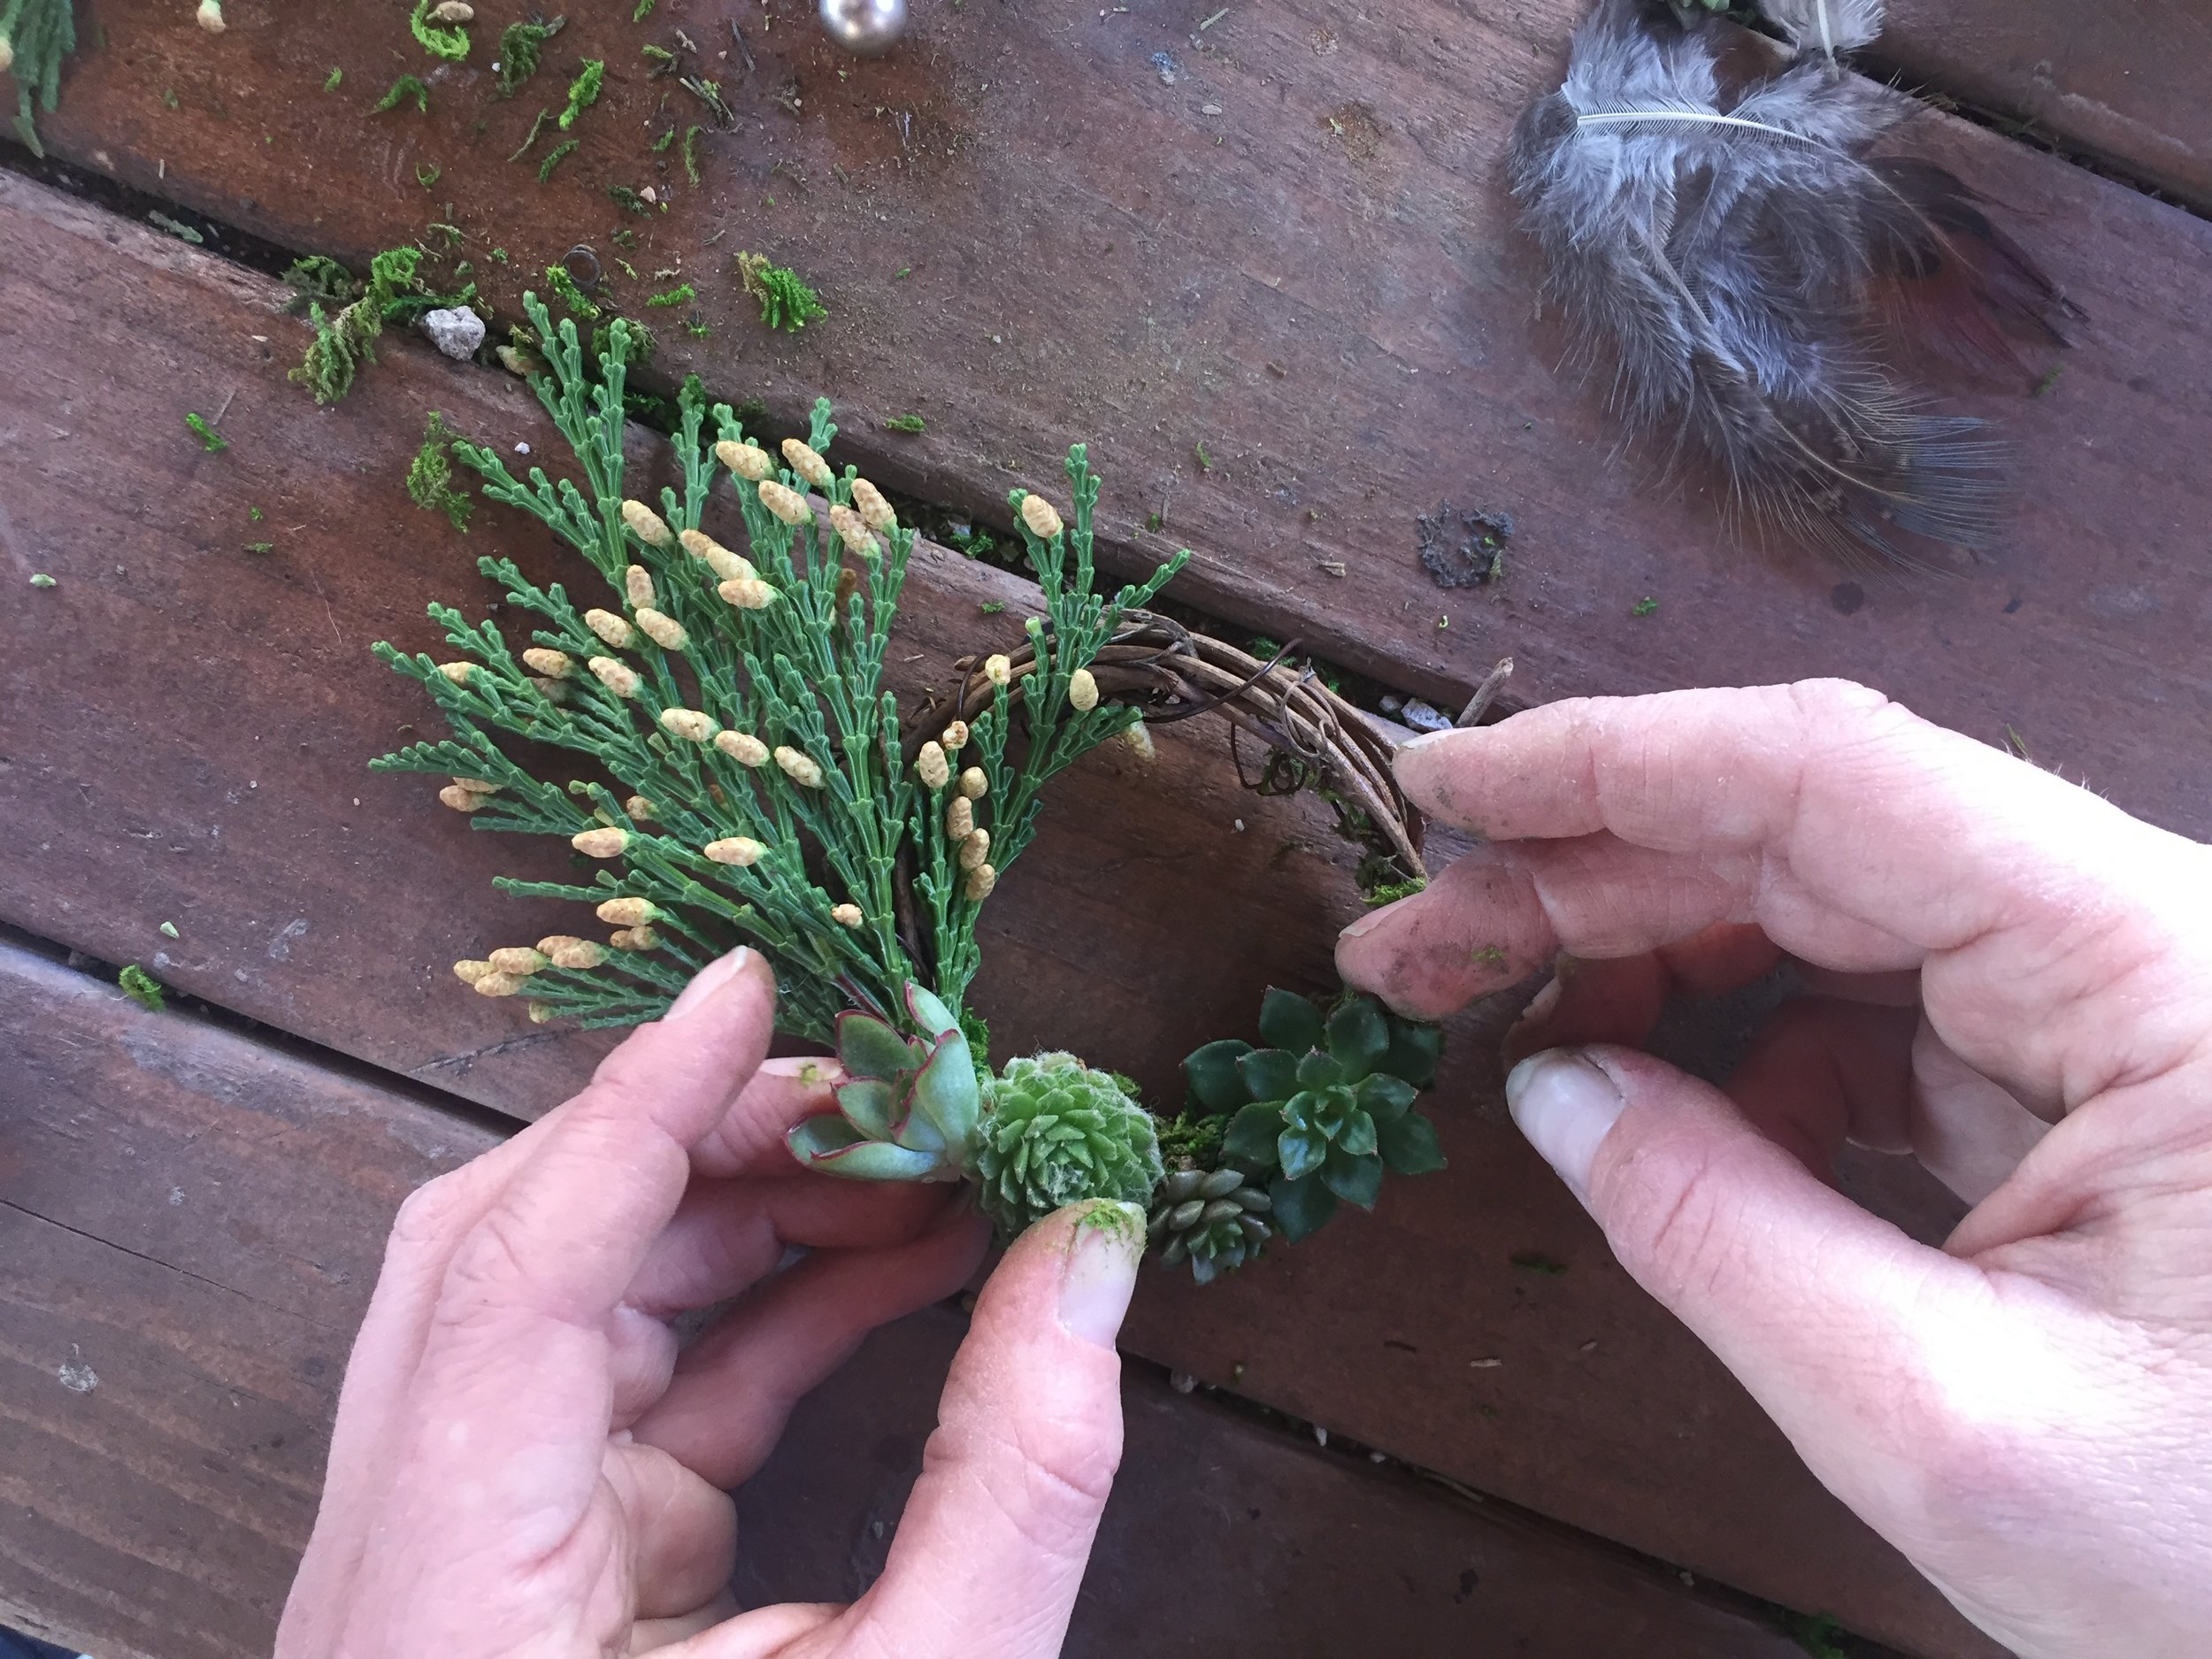 Step 5: Glue on succulent clippings